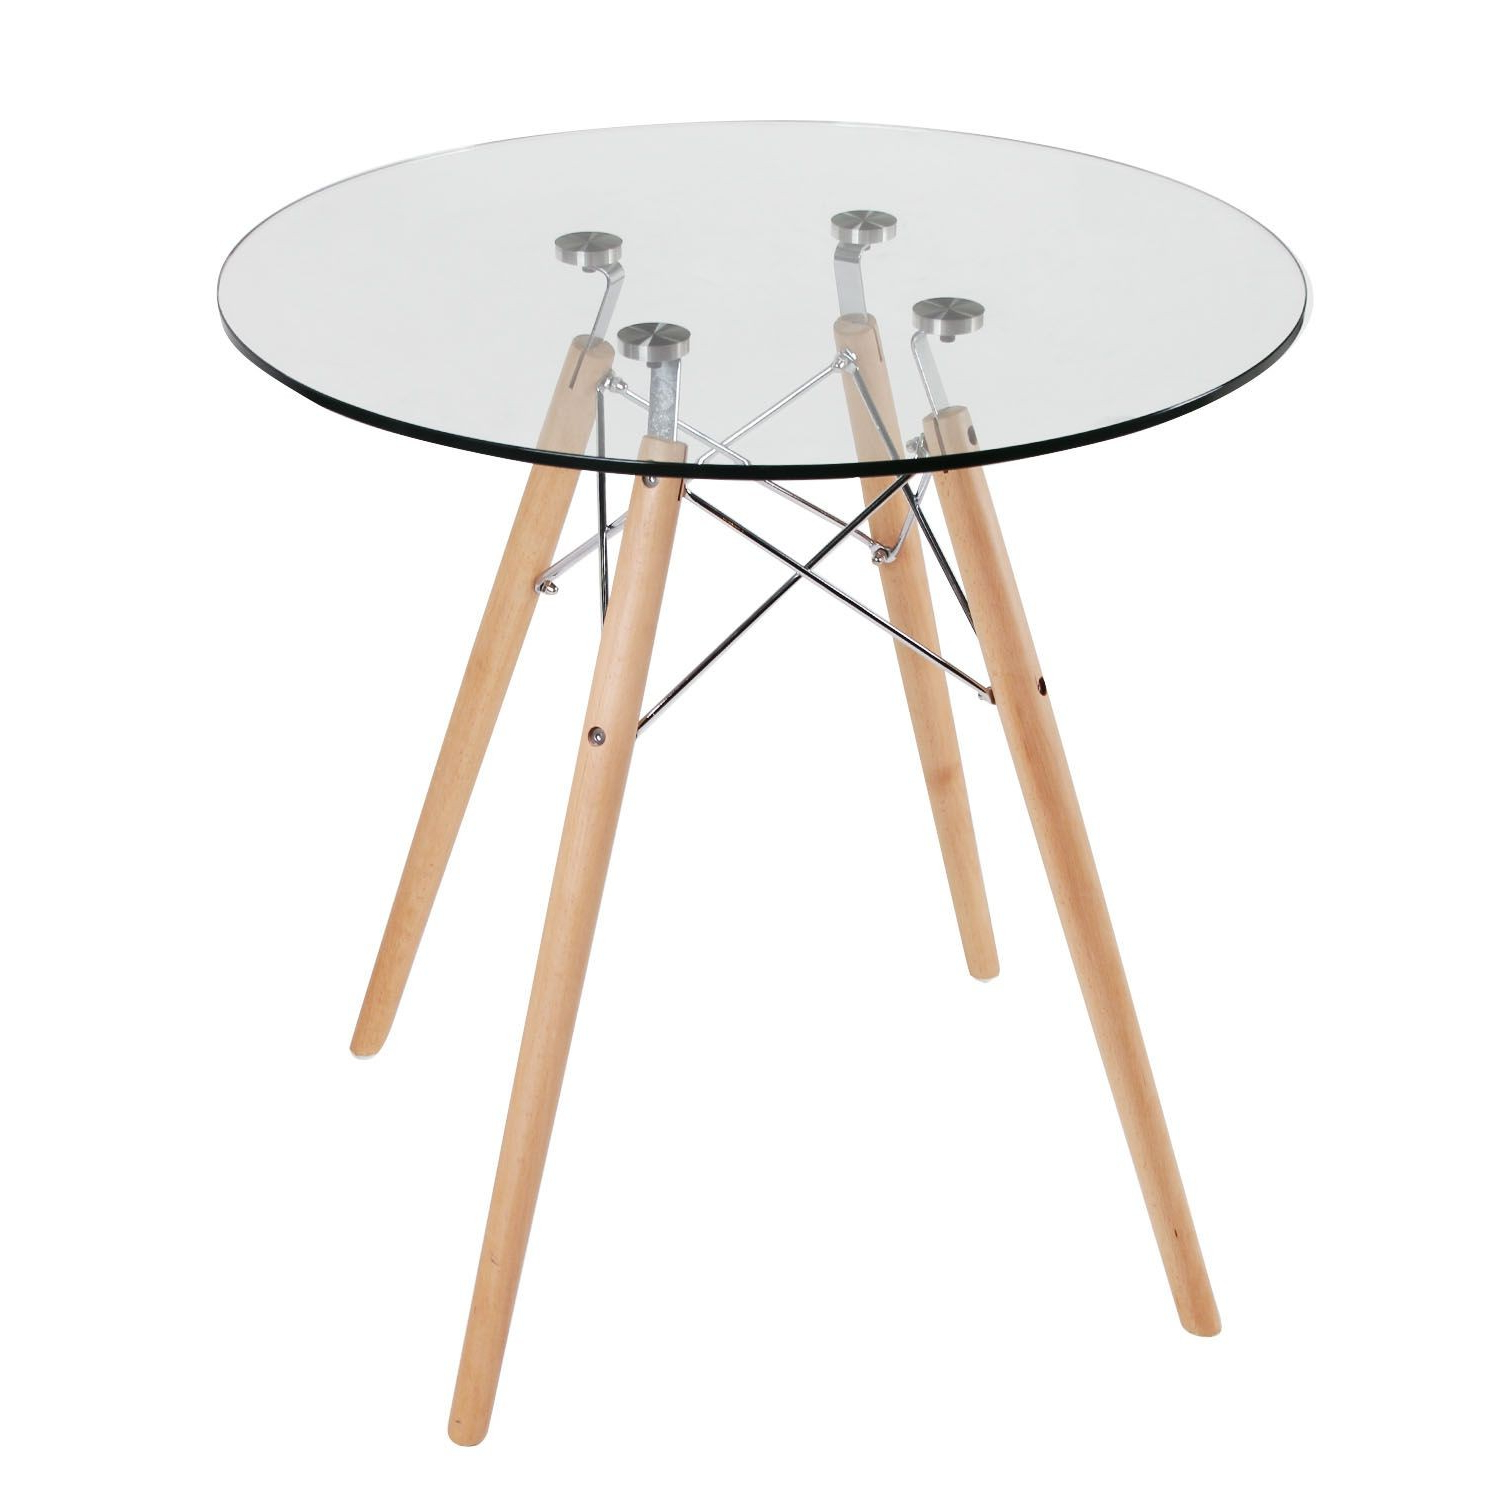 Most Up To Date Eames Style Dining Tables With Chromed Leg And Tempered Glass Top Inside Replica Eames Eiffel Wood Leg Table (Gallery 22 of 30)